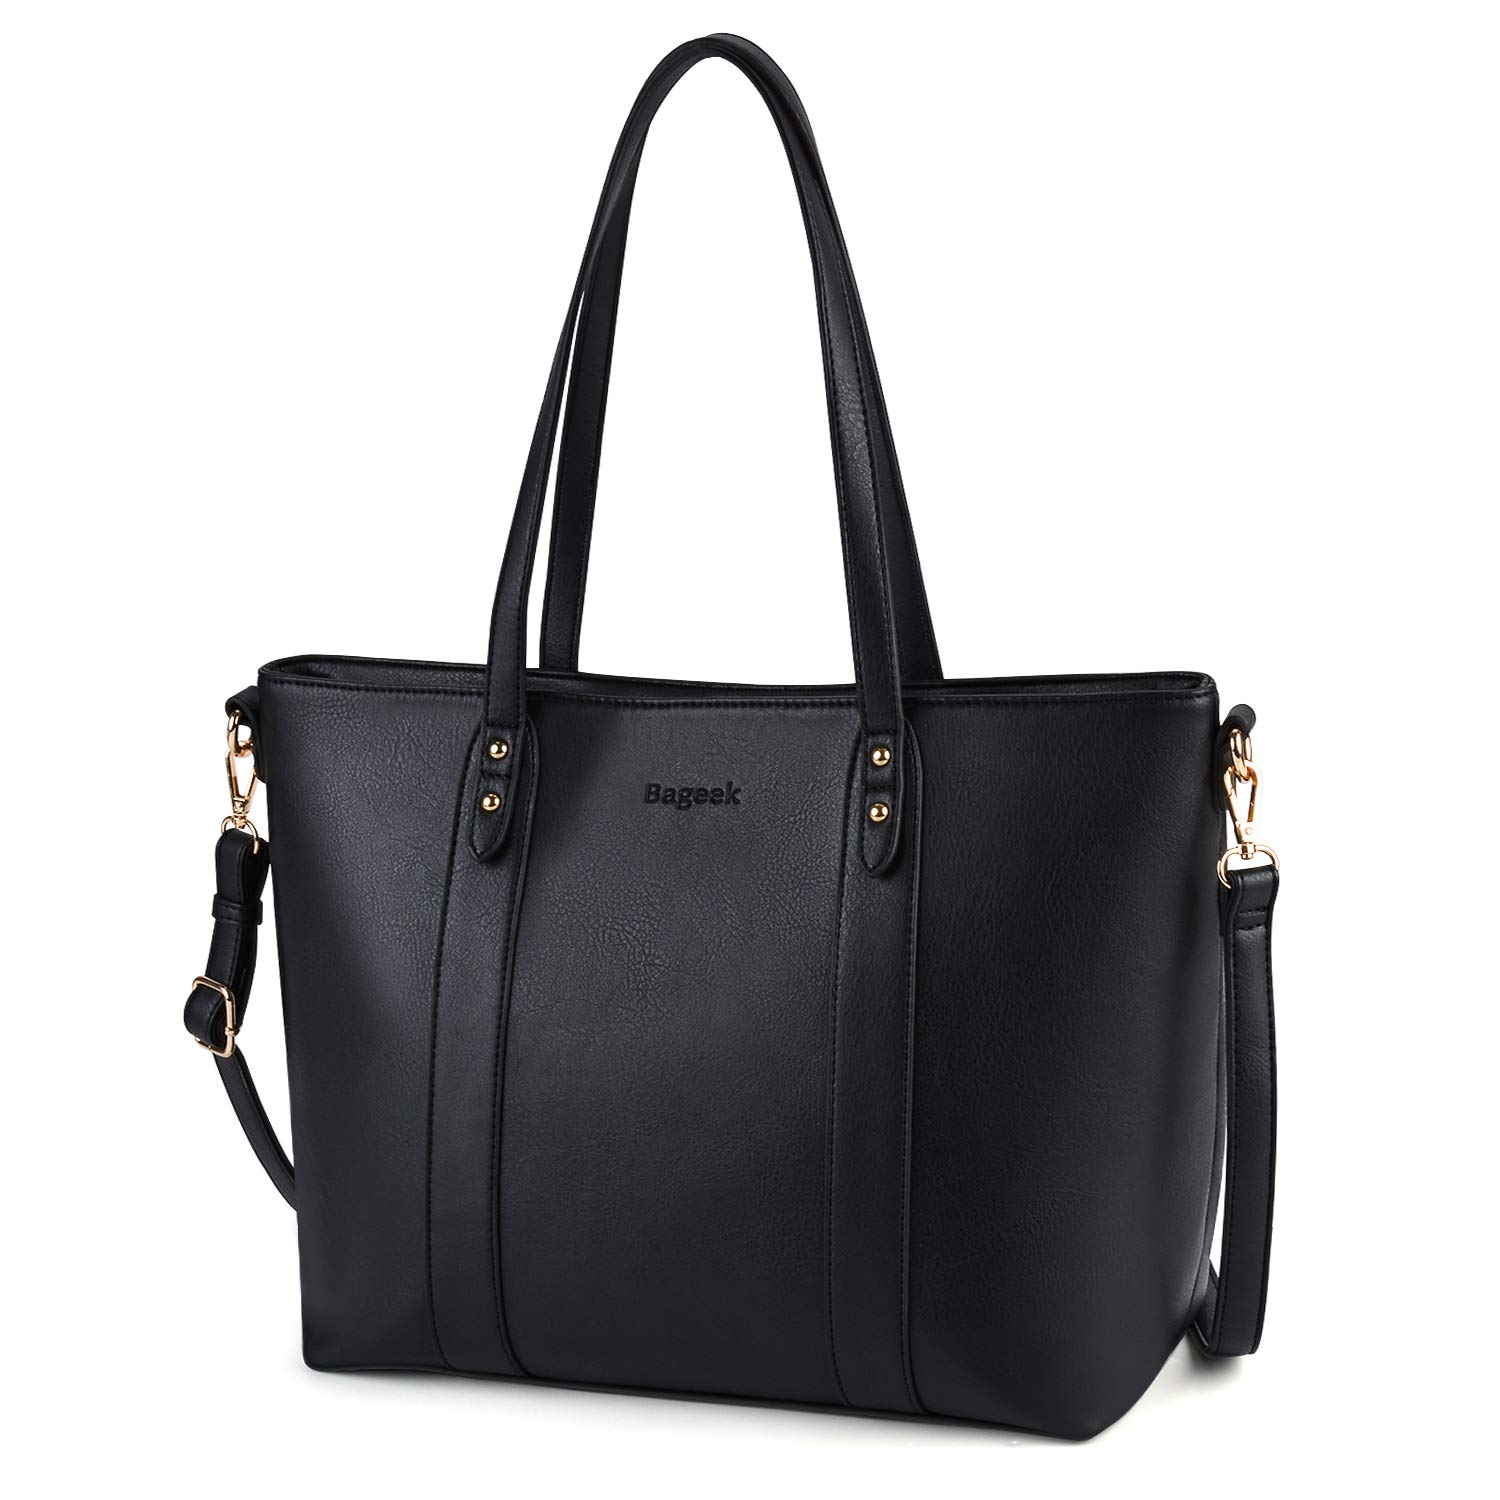 2beb2227bf16 Bageek Tote Bags for Women Pu Leather Tote Purses Black Purses and Handbags  Women Classic Tote Work Bag